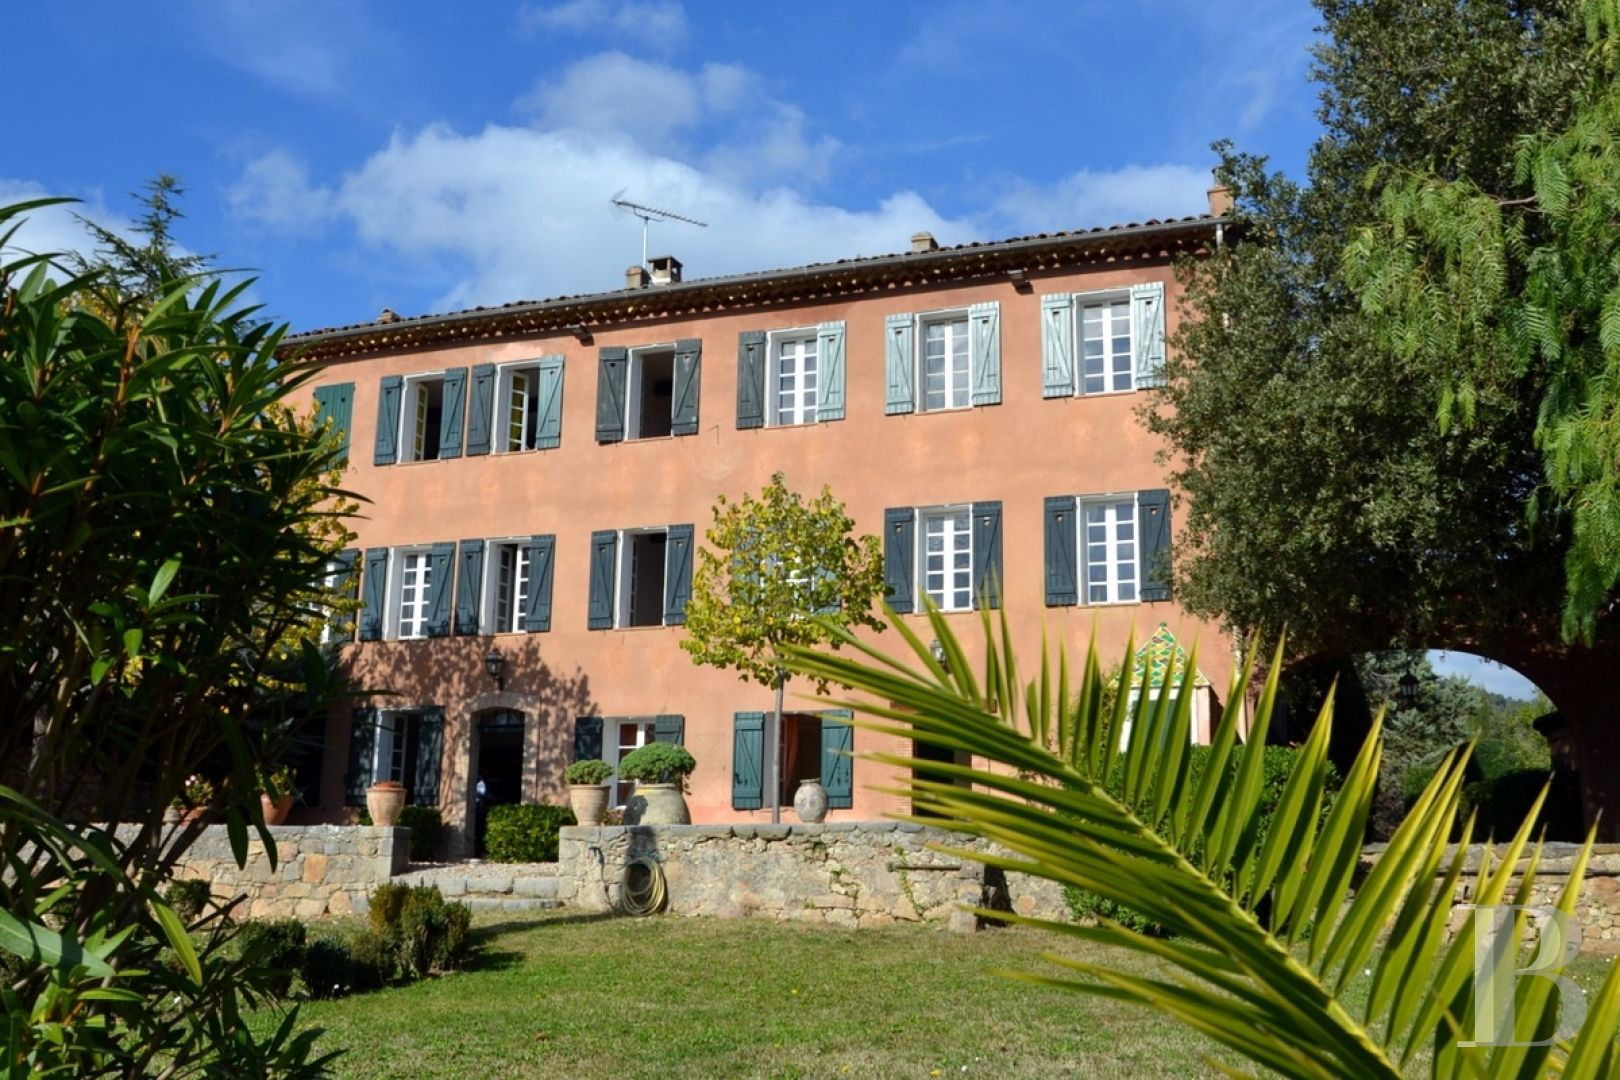 property for sale France provence cote dazur cannes 19th - 1 zoom